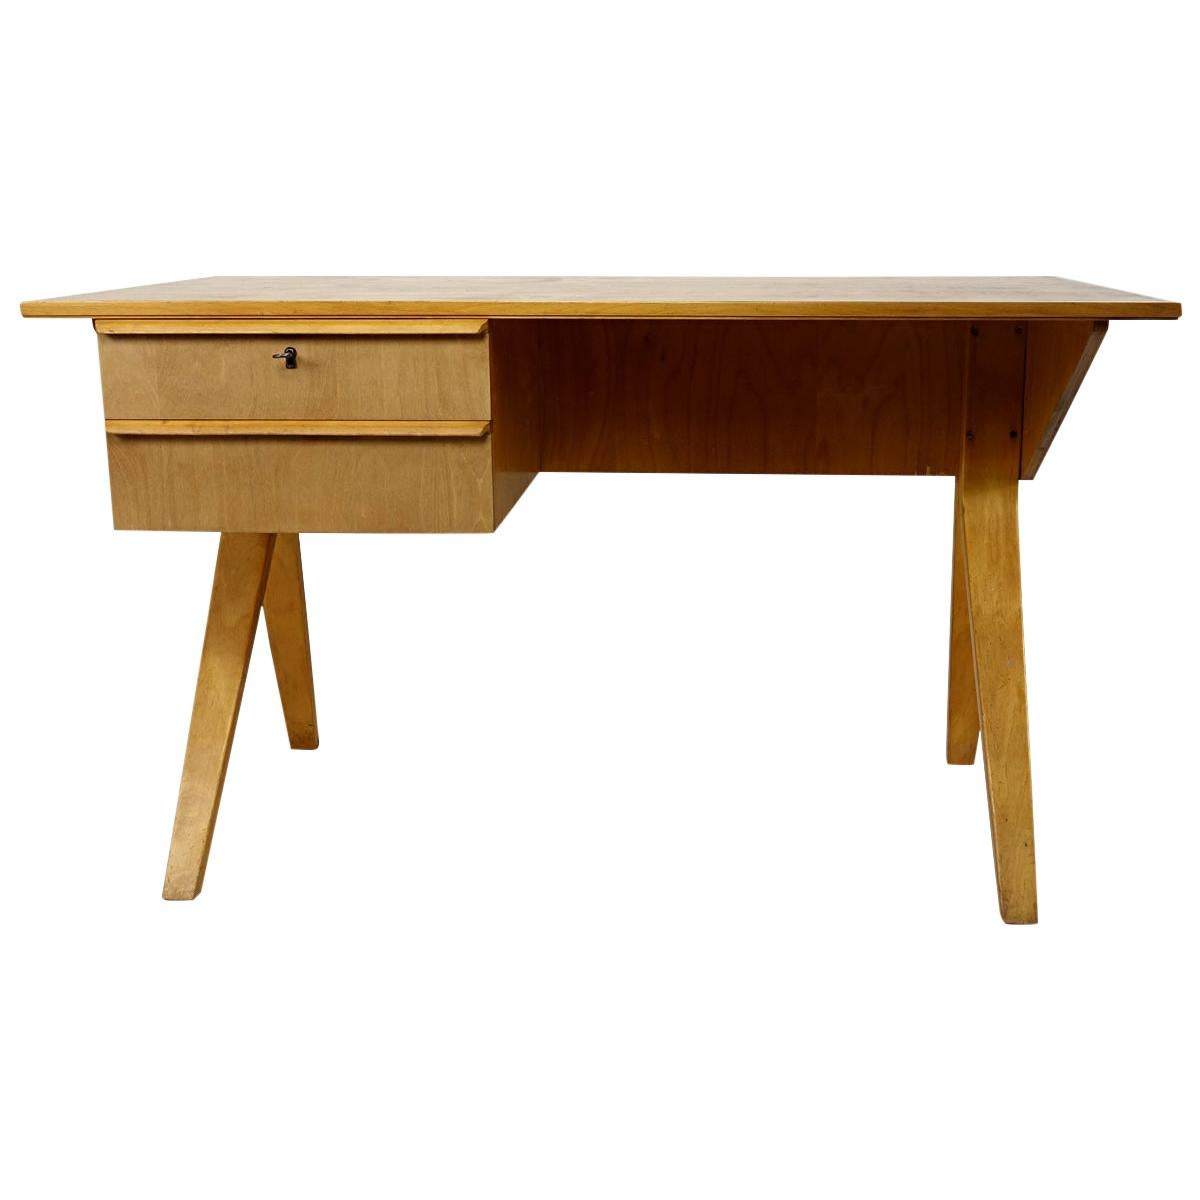 Mid-Century Modern Desk EB02 Designed by Cees Braakman for USM Pastoe